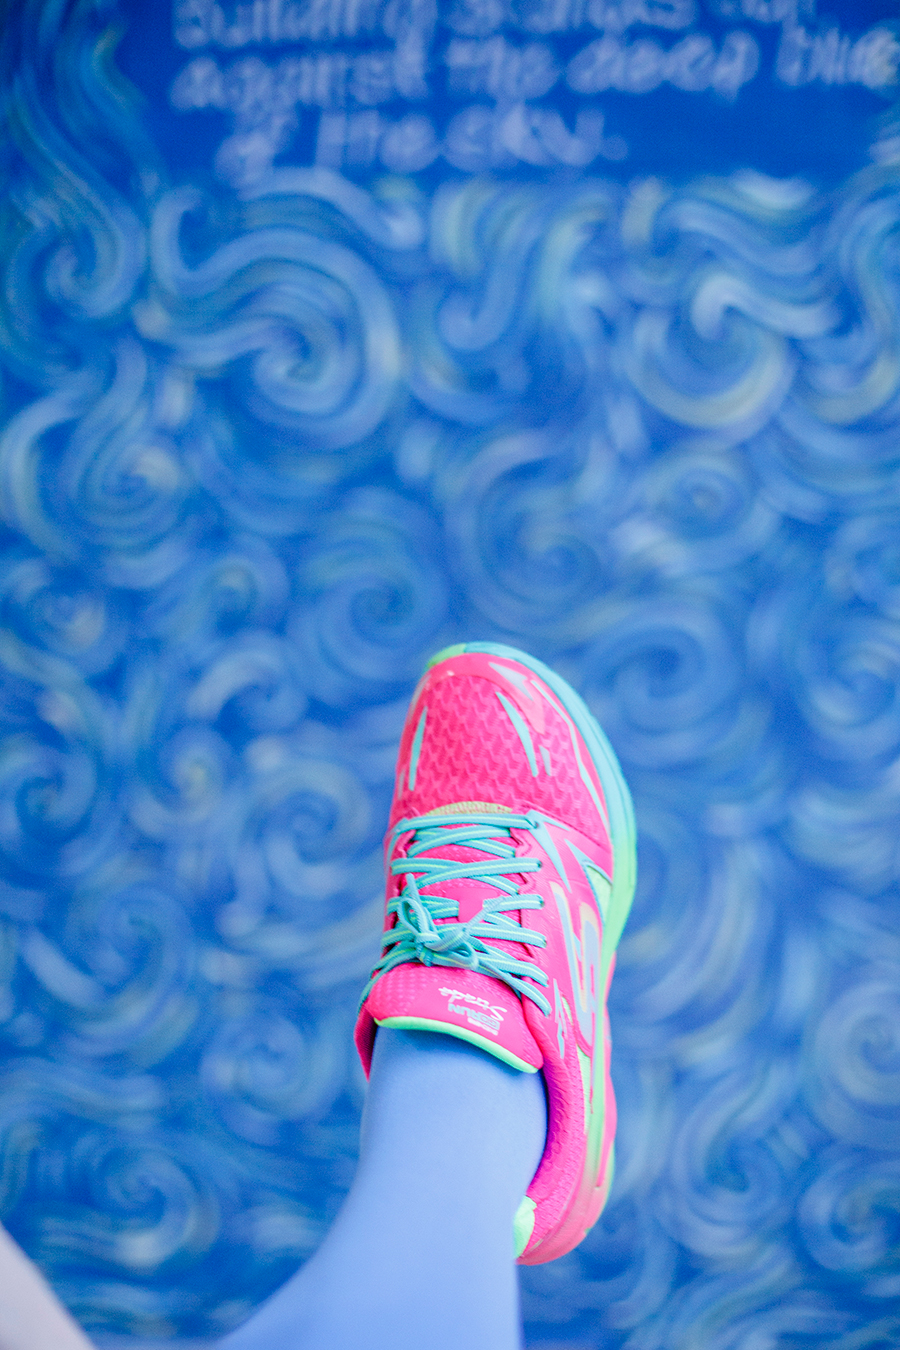 Void Deck Art Gallery: Homage to Vincent Van Gogh. Wearing Skechers neon pink sneakers.